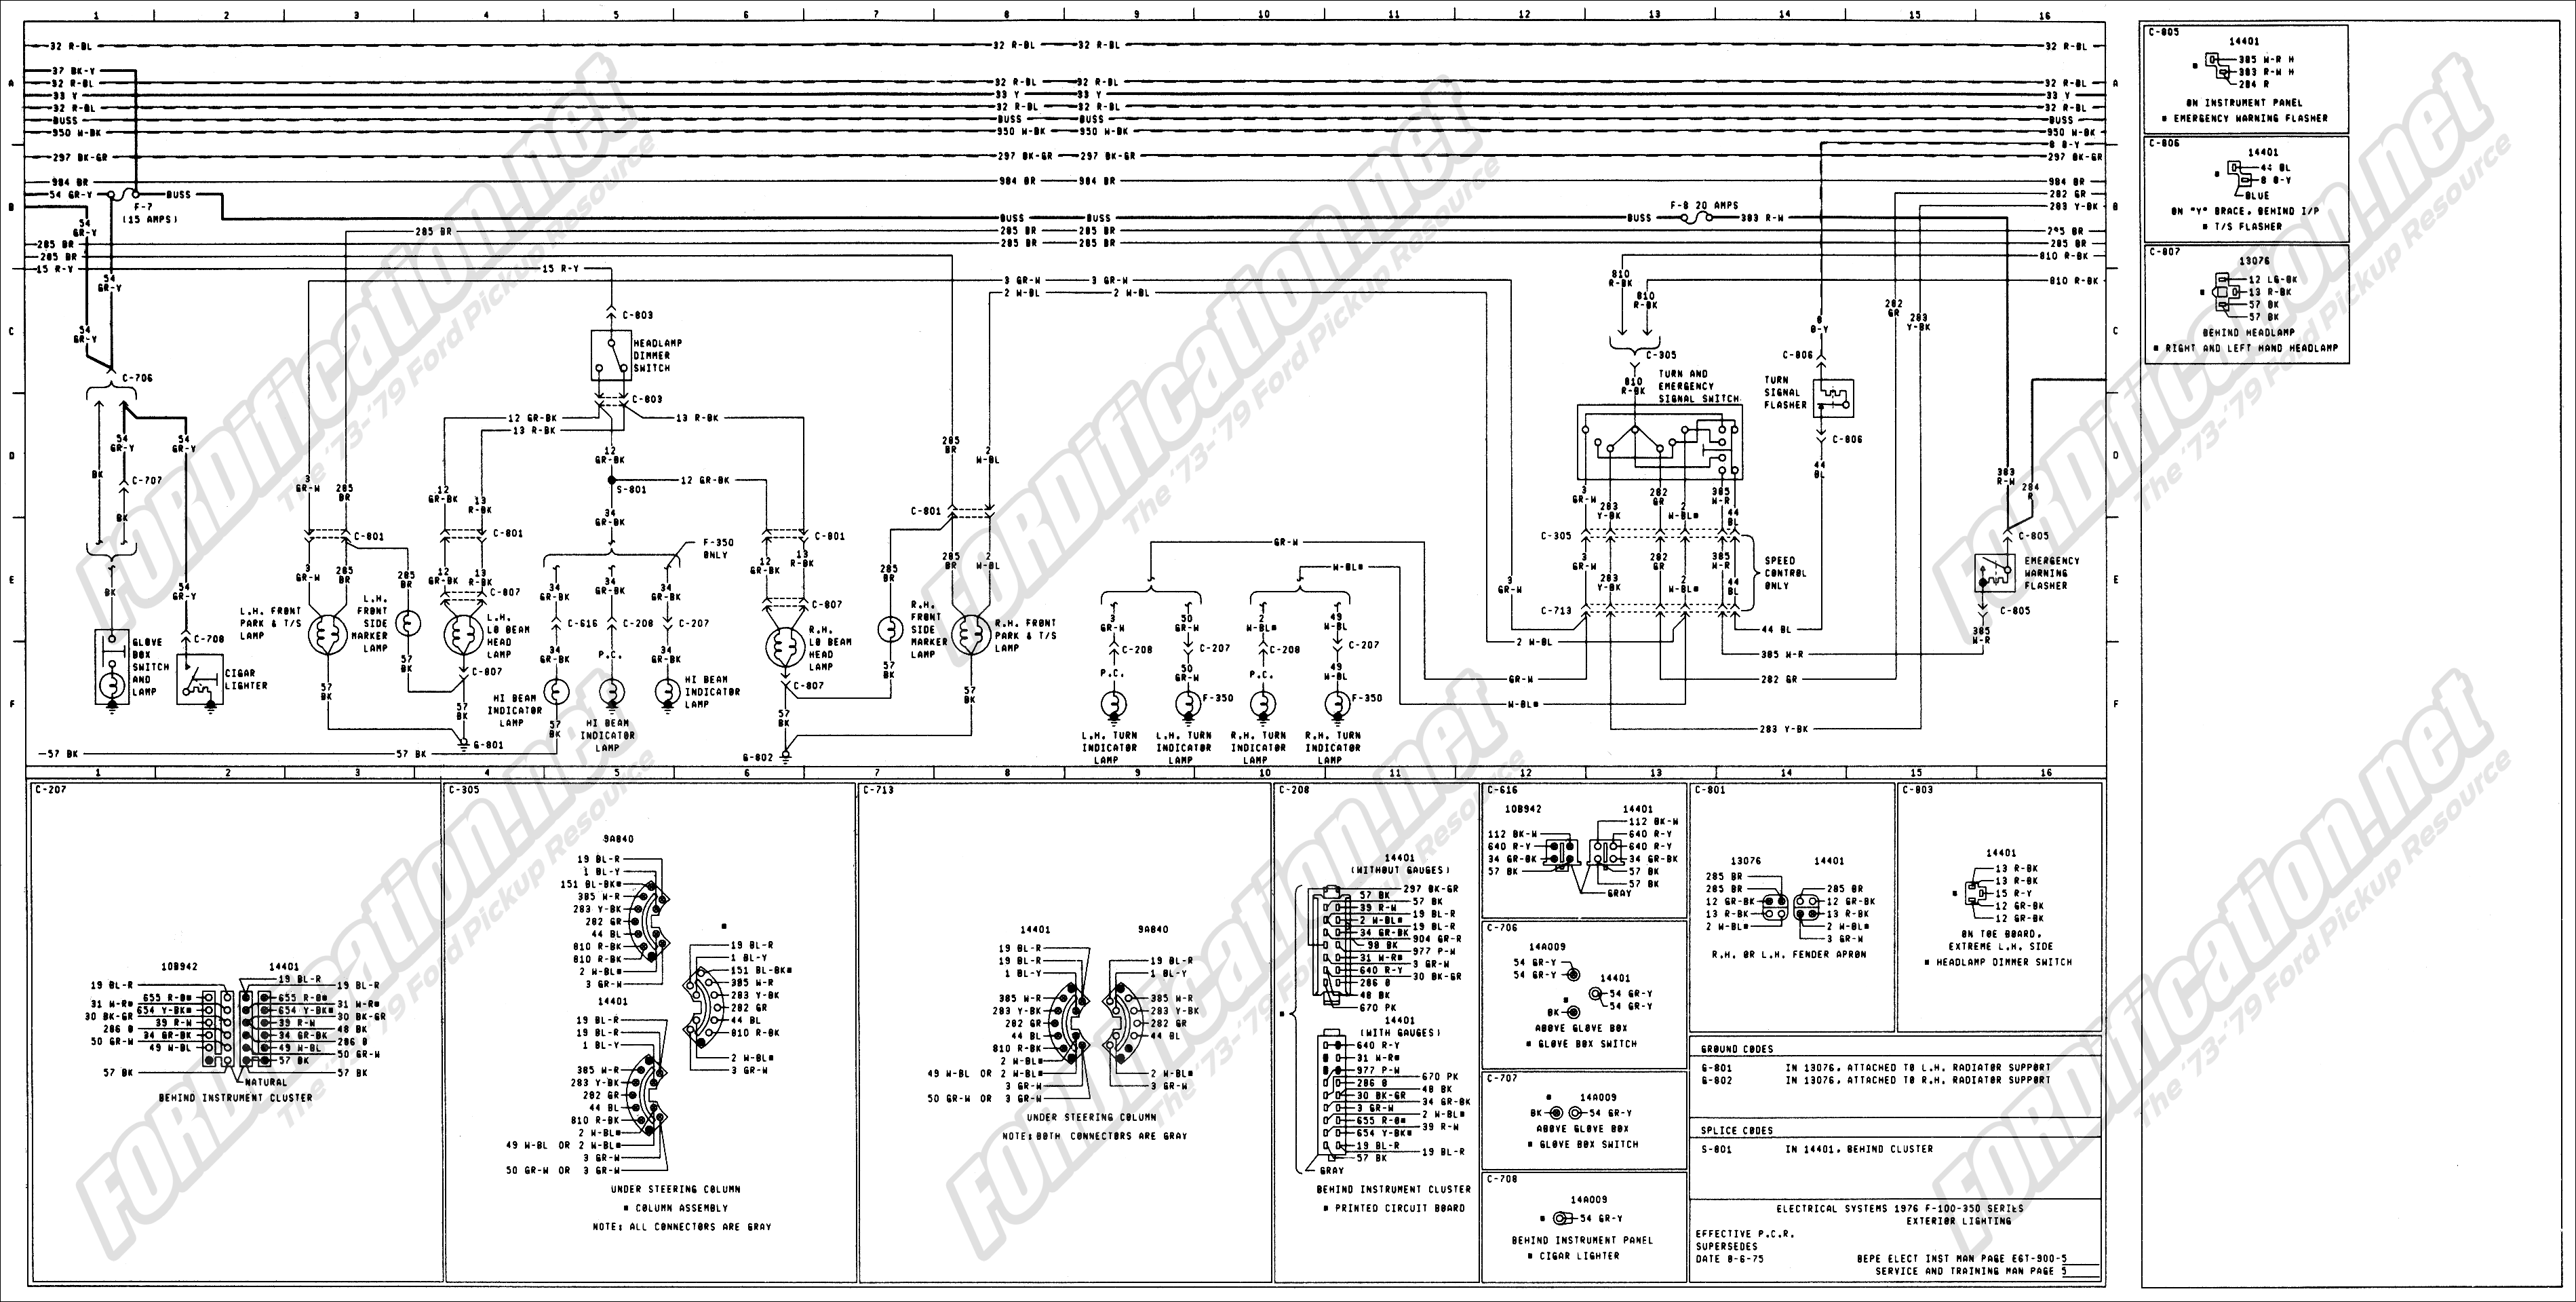 Key Switch Wiring Diagram Ford F650 Simple Options 2007 Harness 1973 1979 Truck Diagrams Schematics Fordification Net 2006